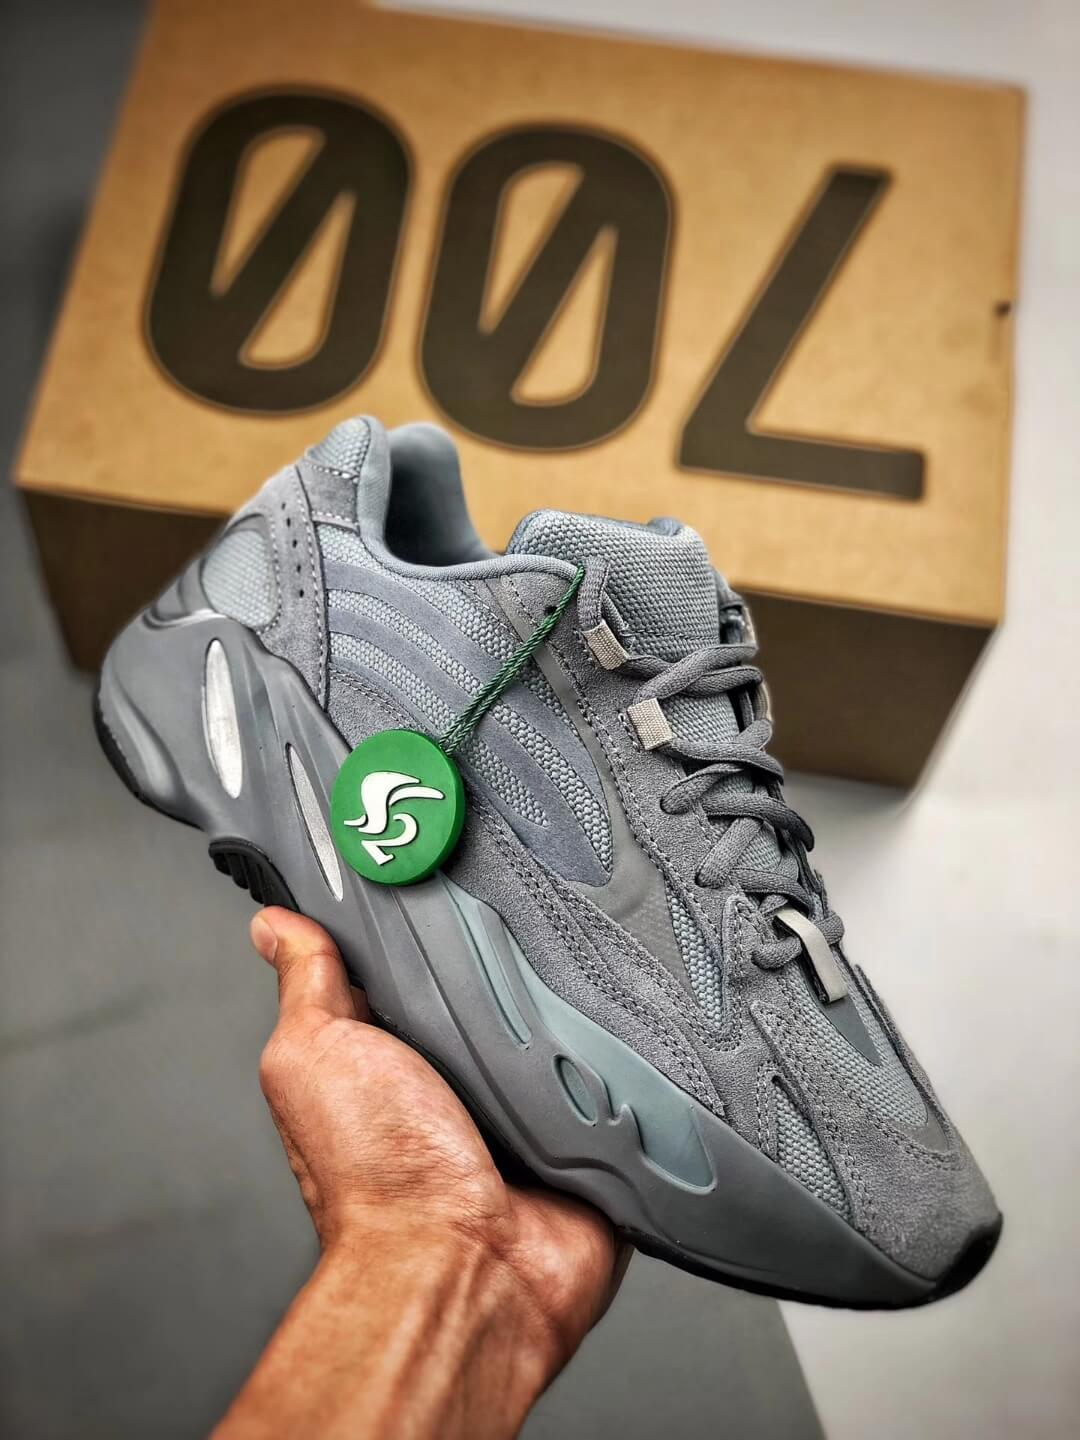 The adidas Yeezy Boost 700 V2 Hospital Blue Sneaker RepShoes 01